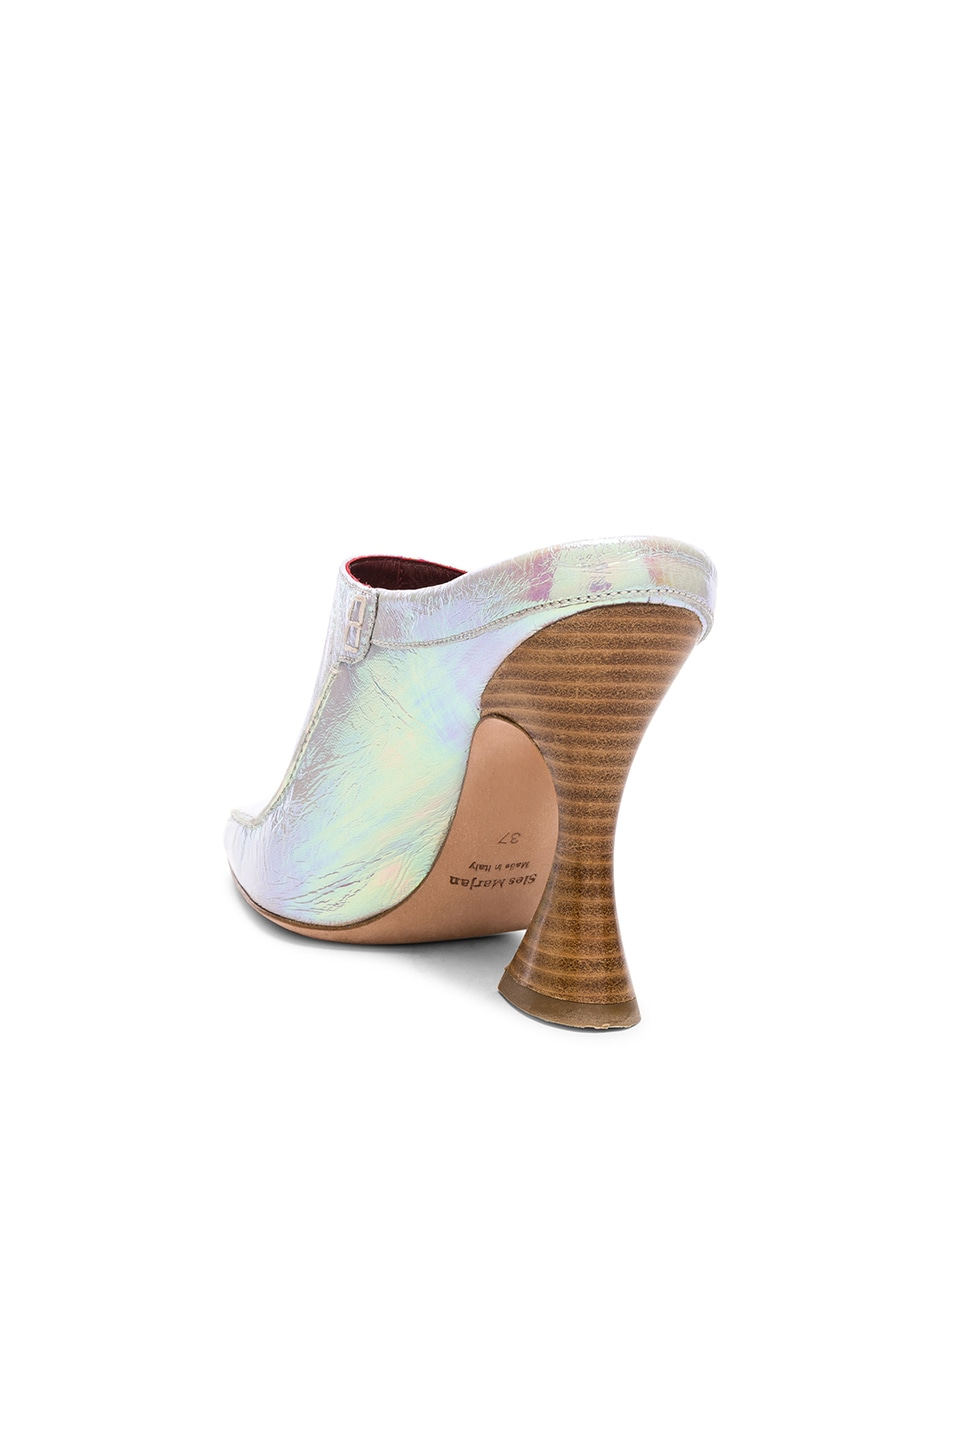 Image 3 of Sies Marjan Dena Holographic Loafer in Multicolored